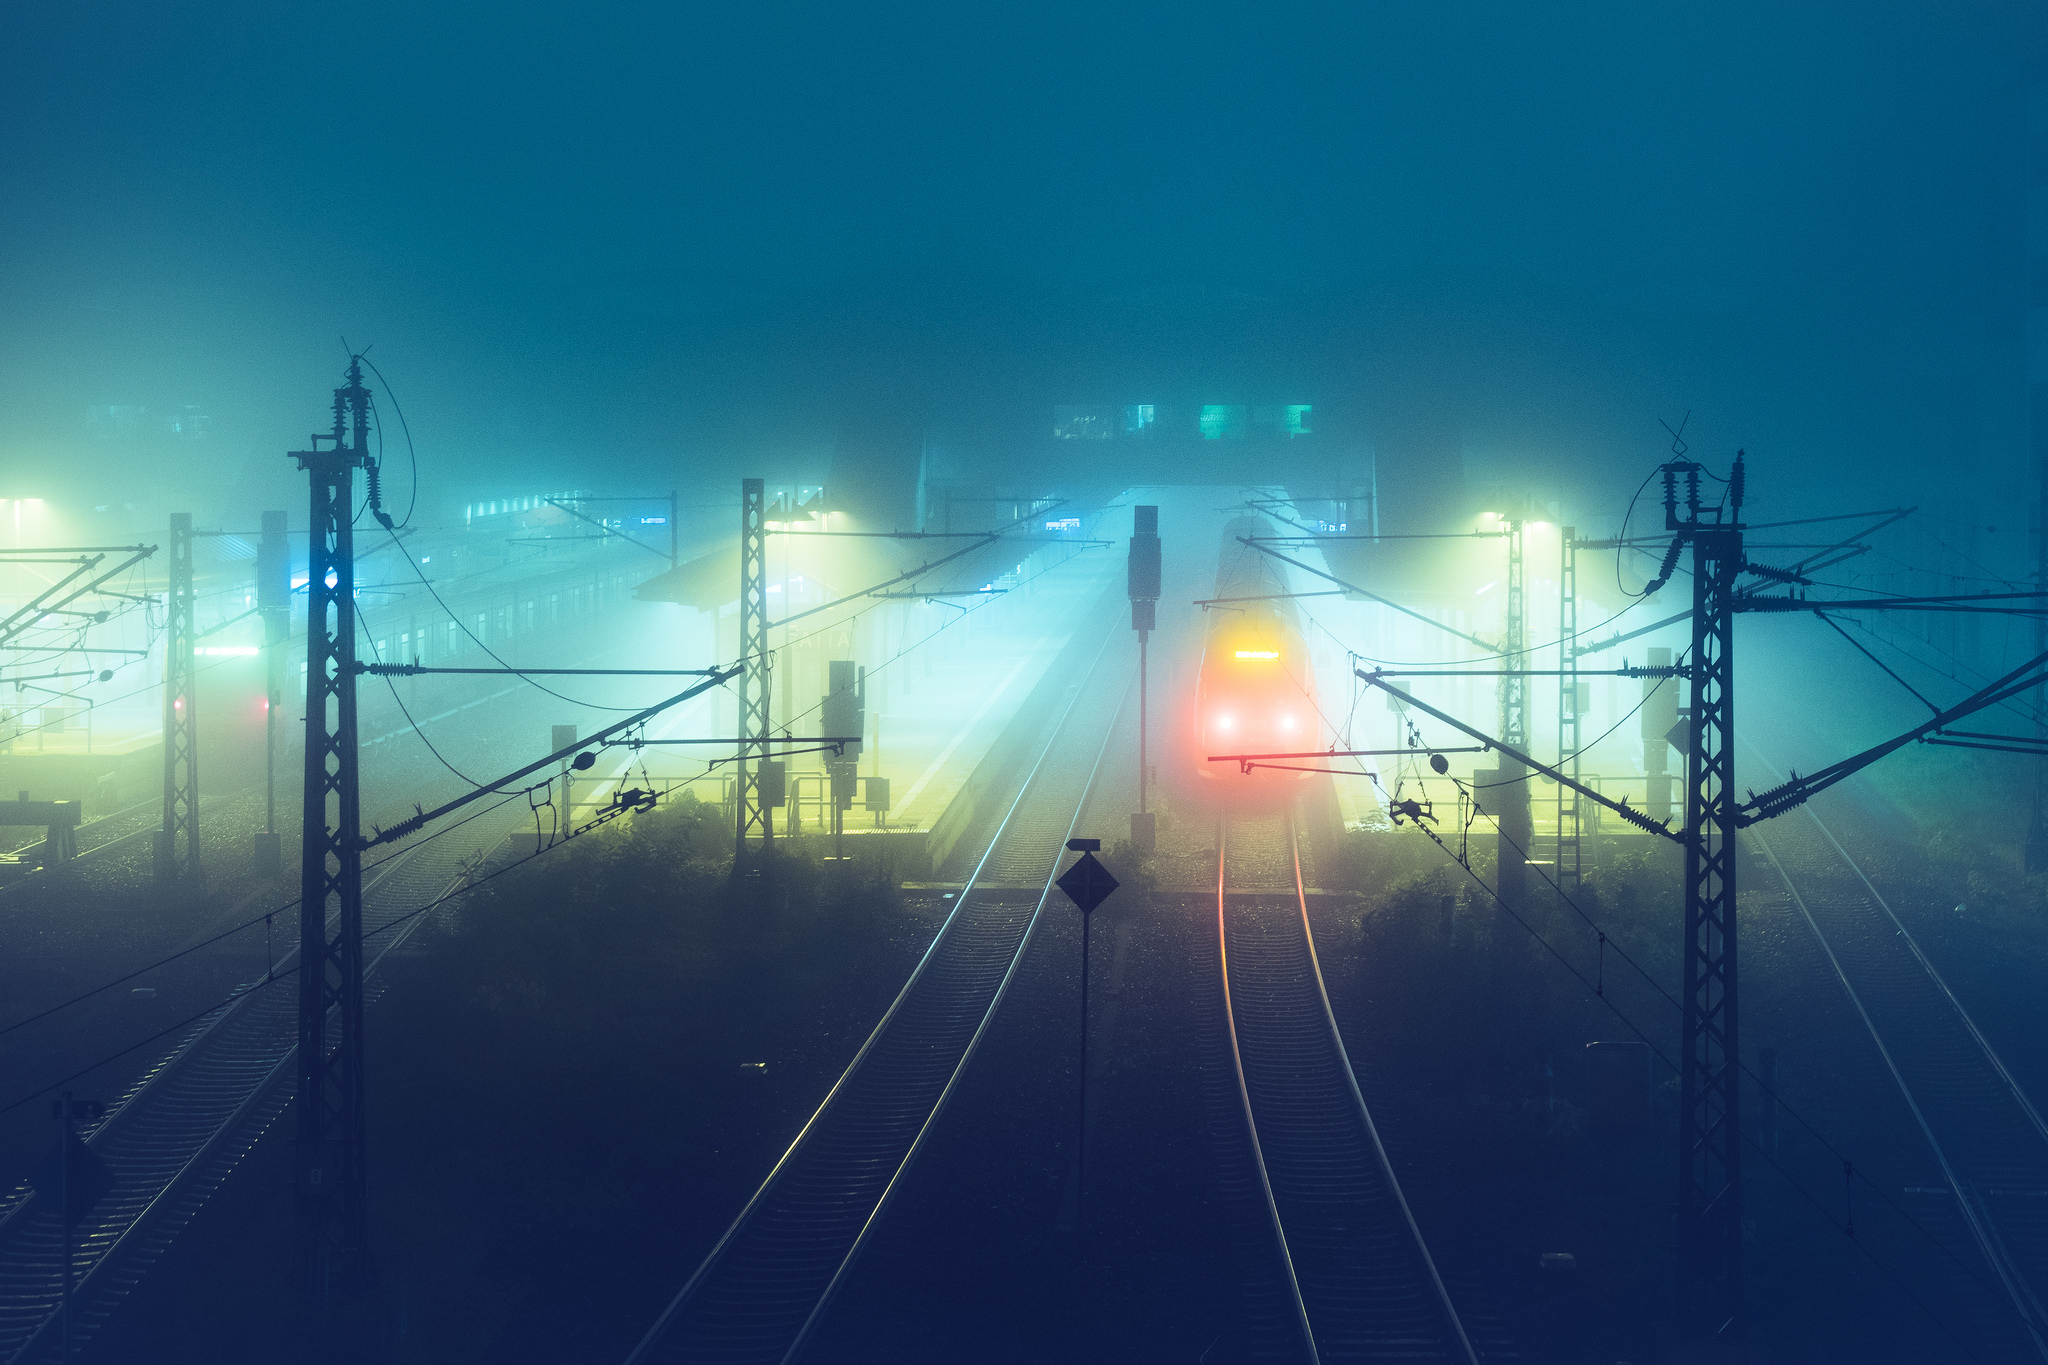 Andreas Levers - At night - Rail